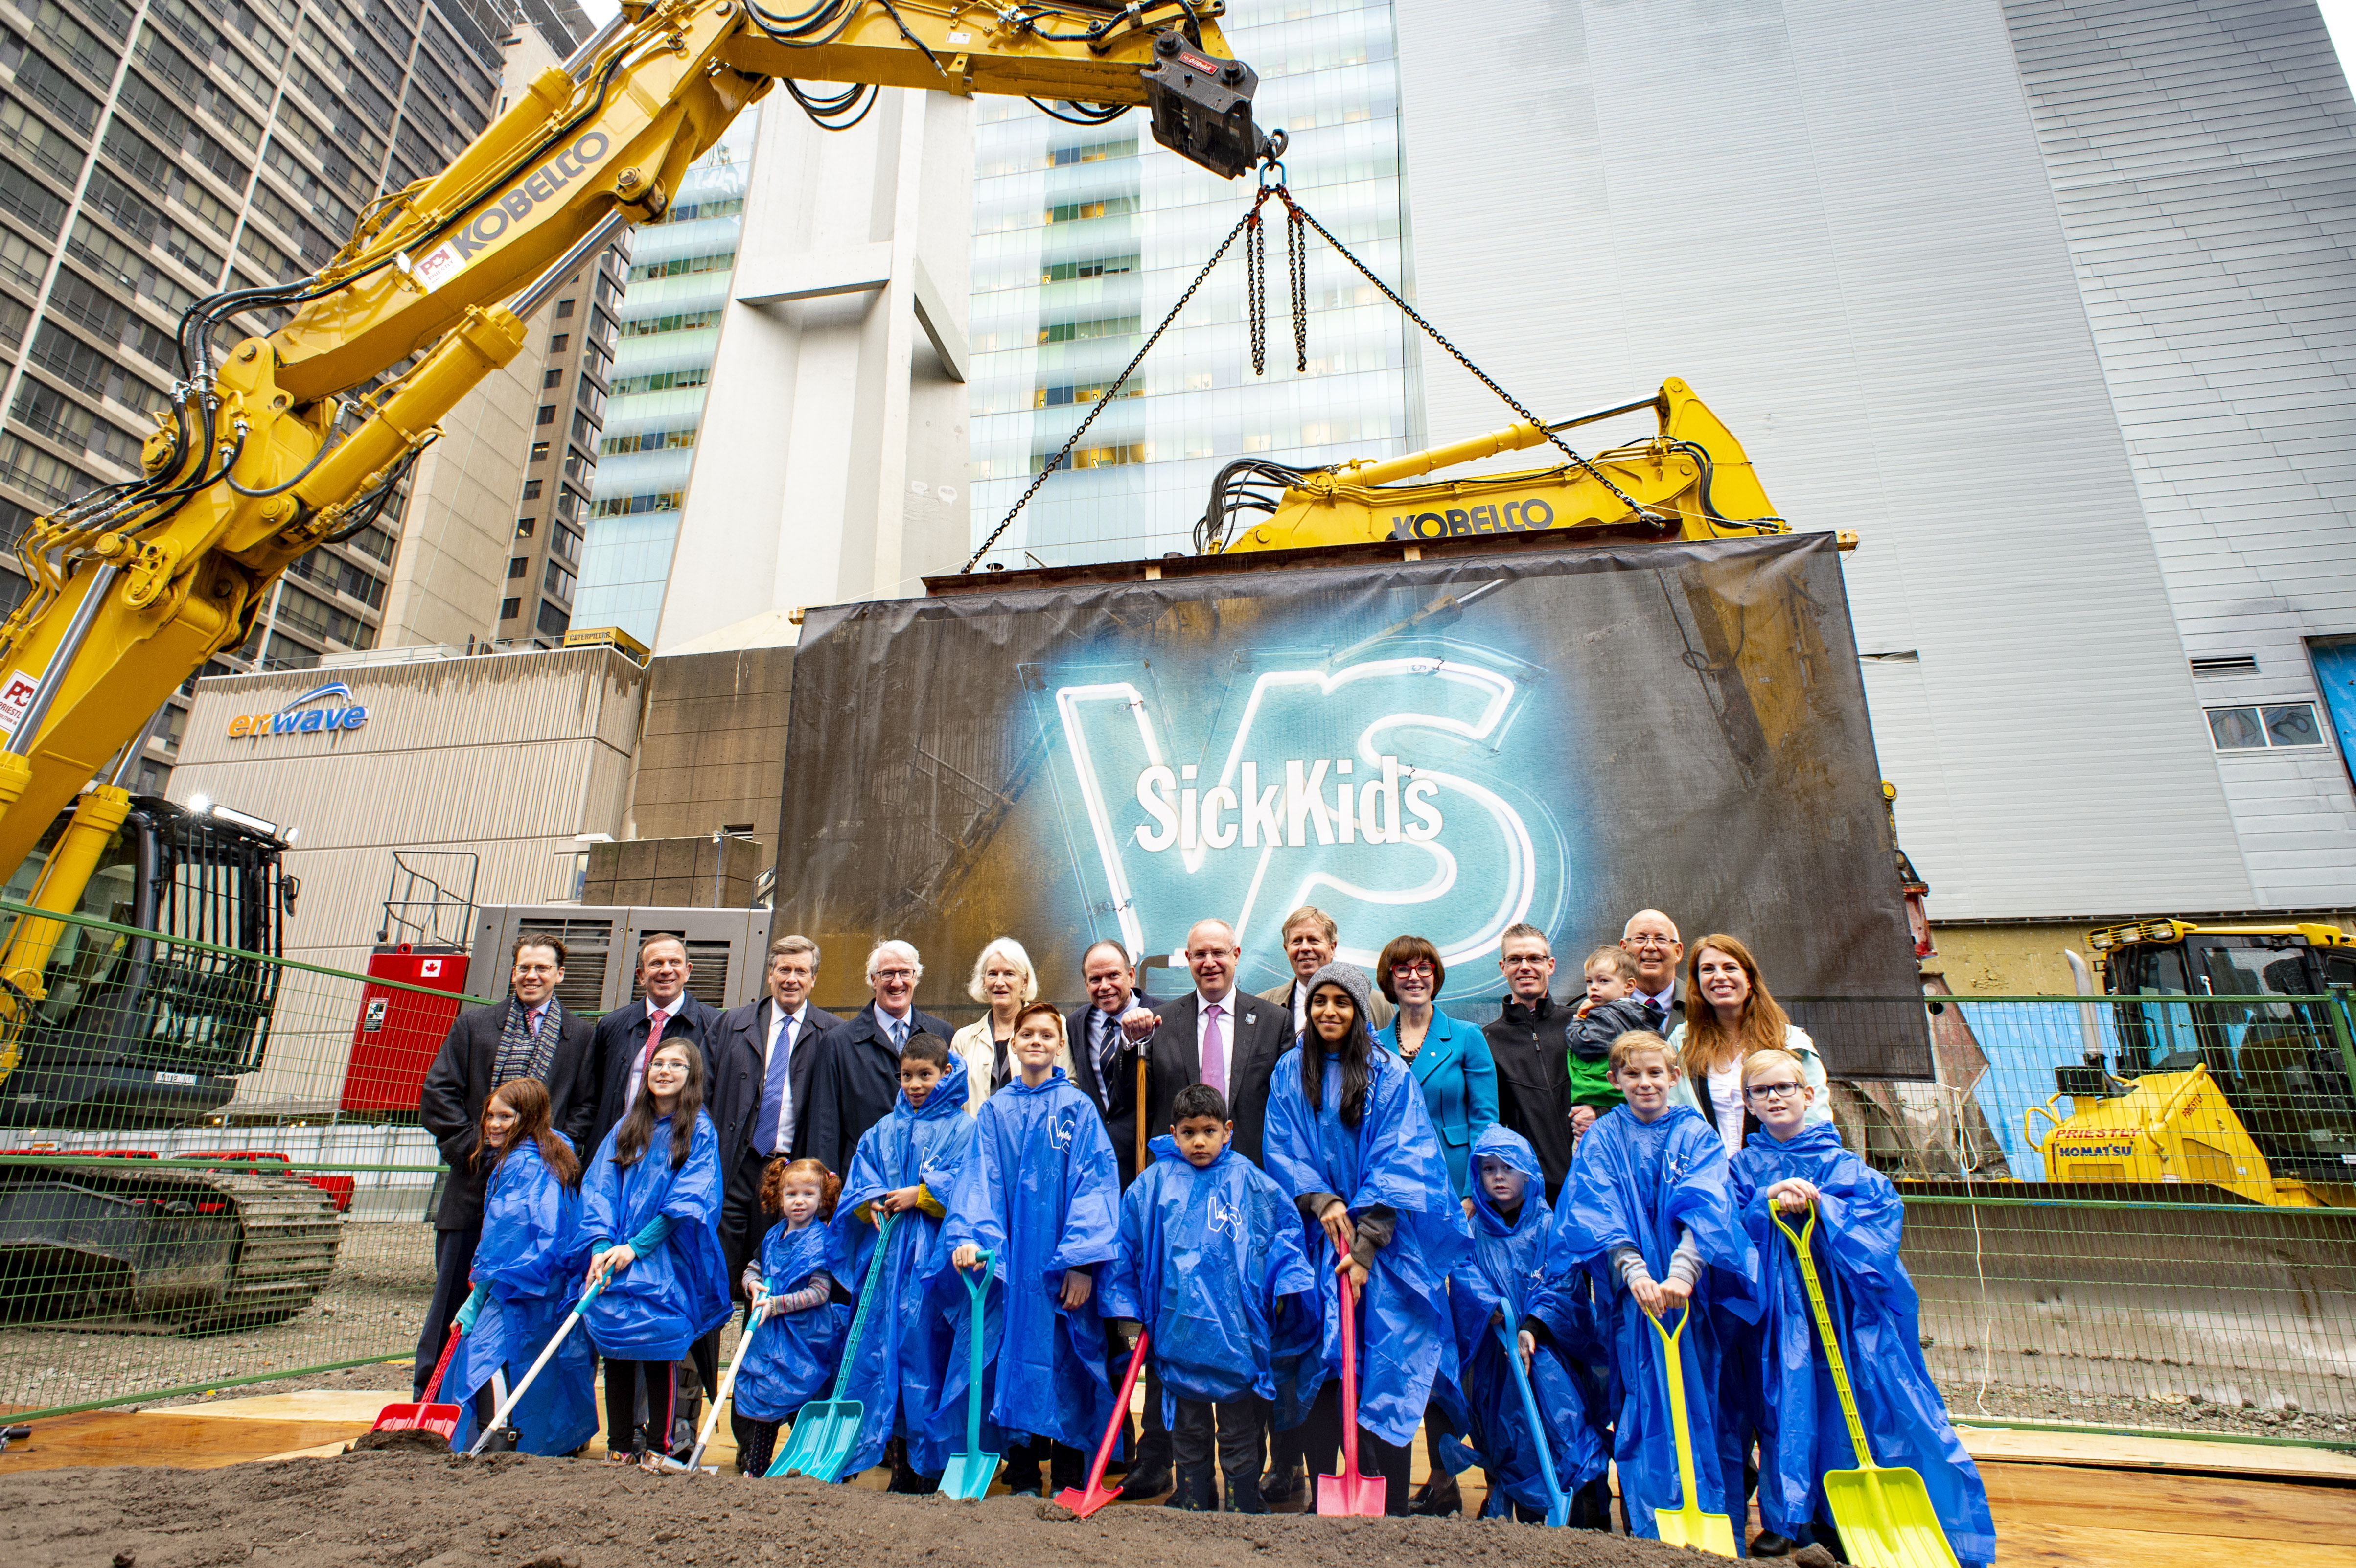 Groundbreakers and SickKids Patients attend the ground breaking ceremony